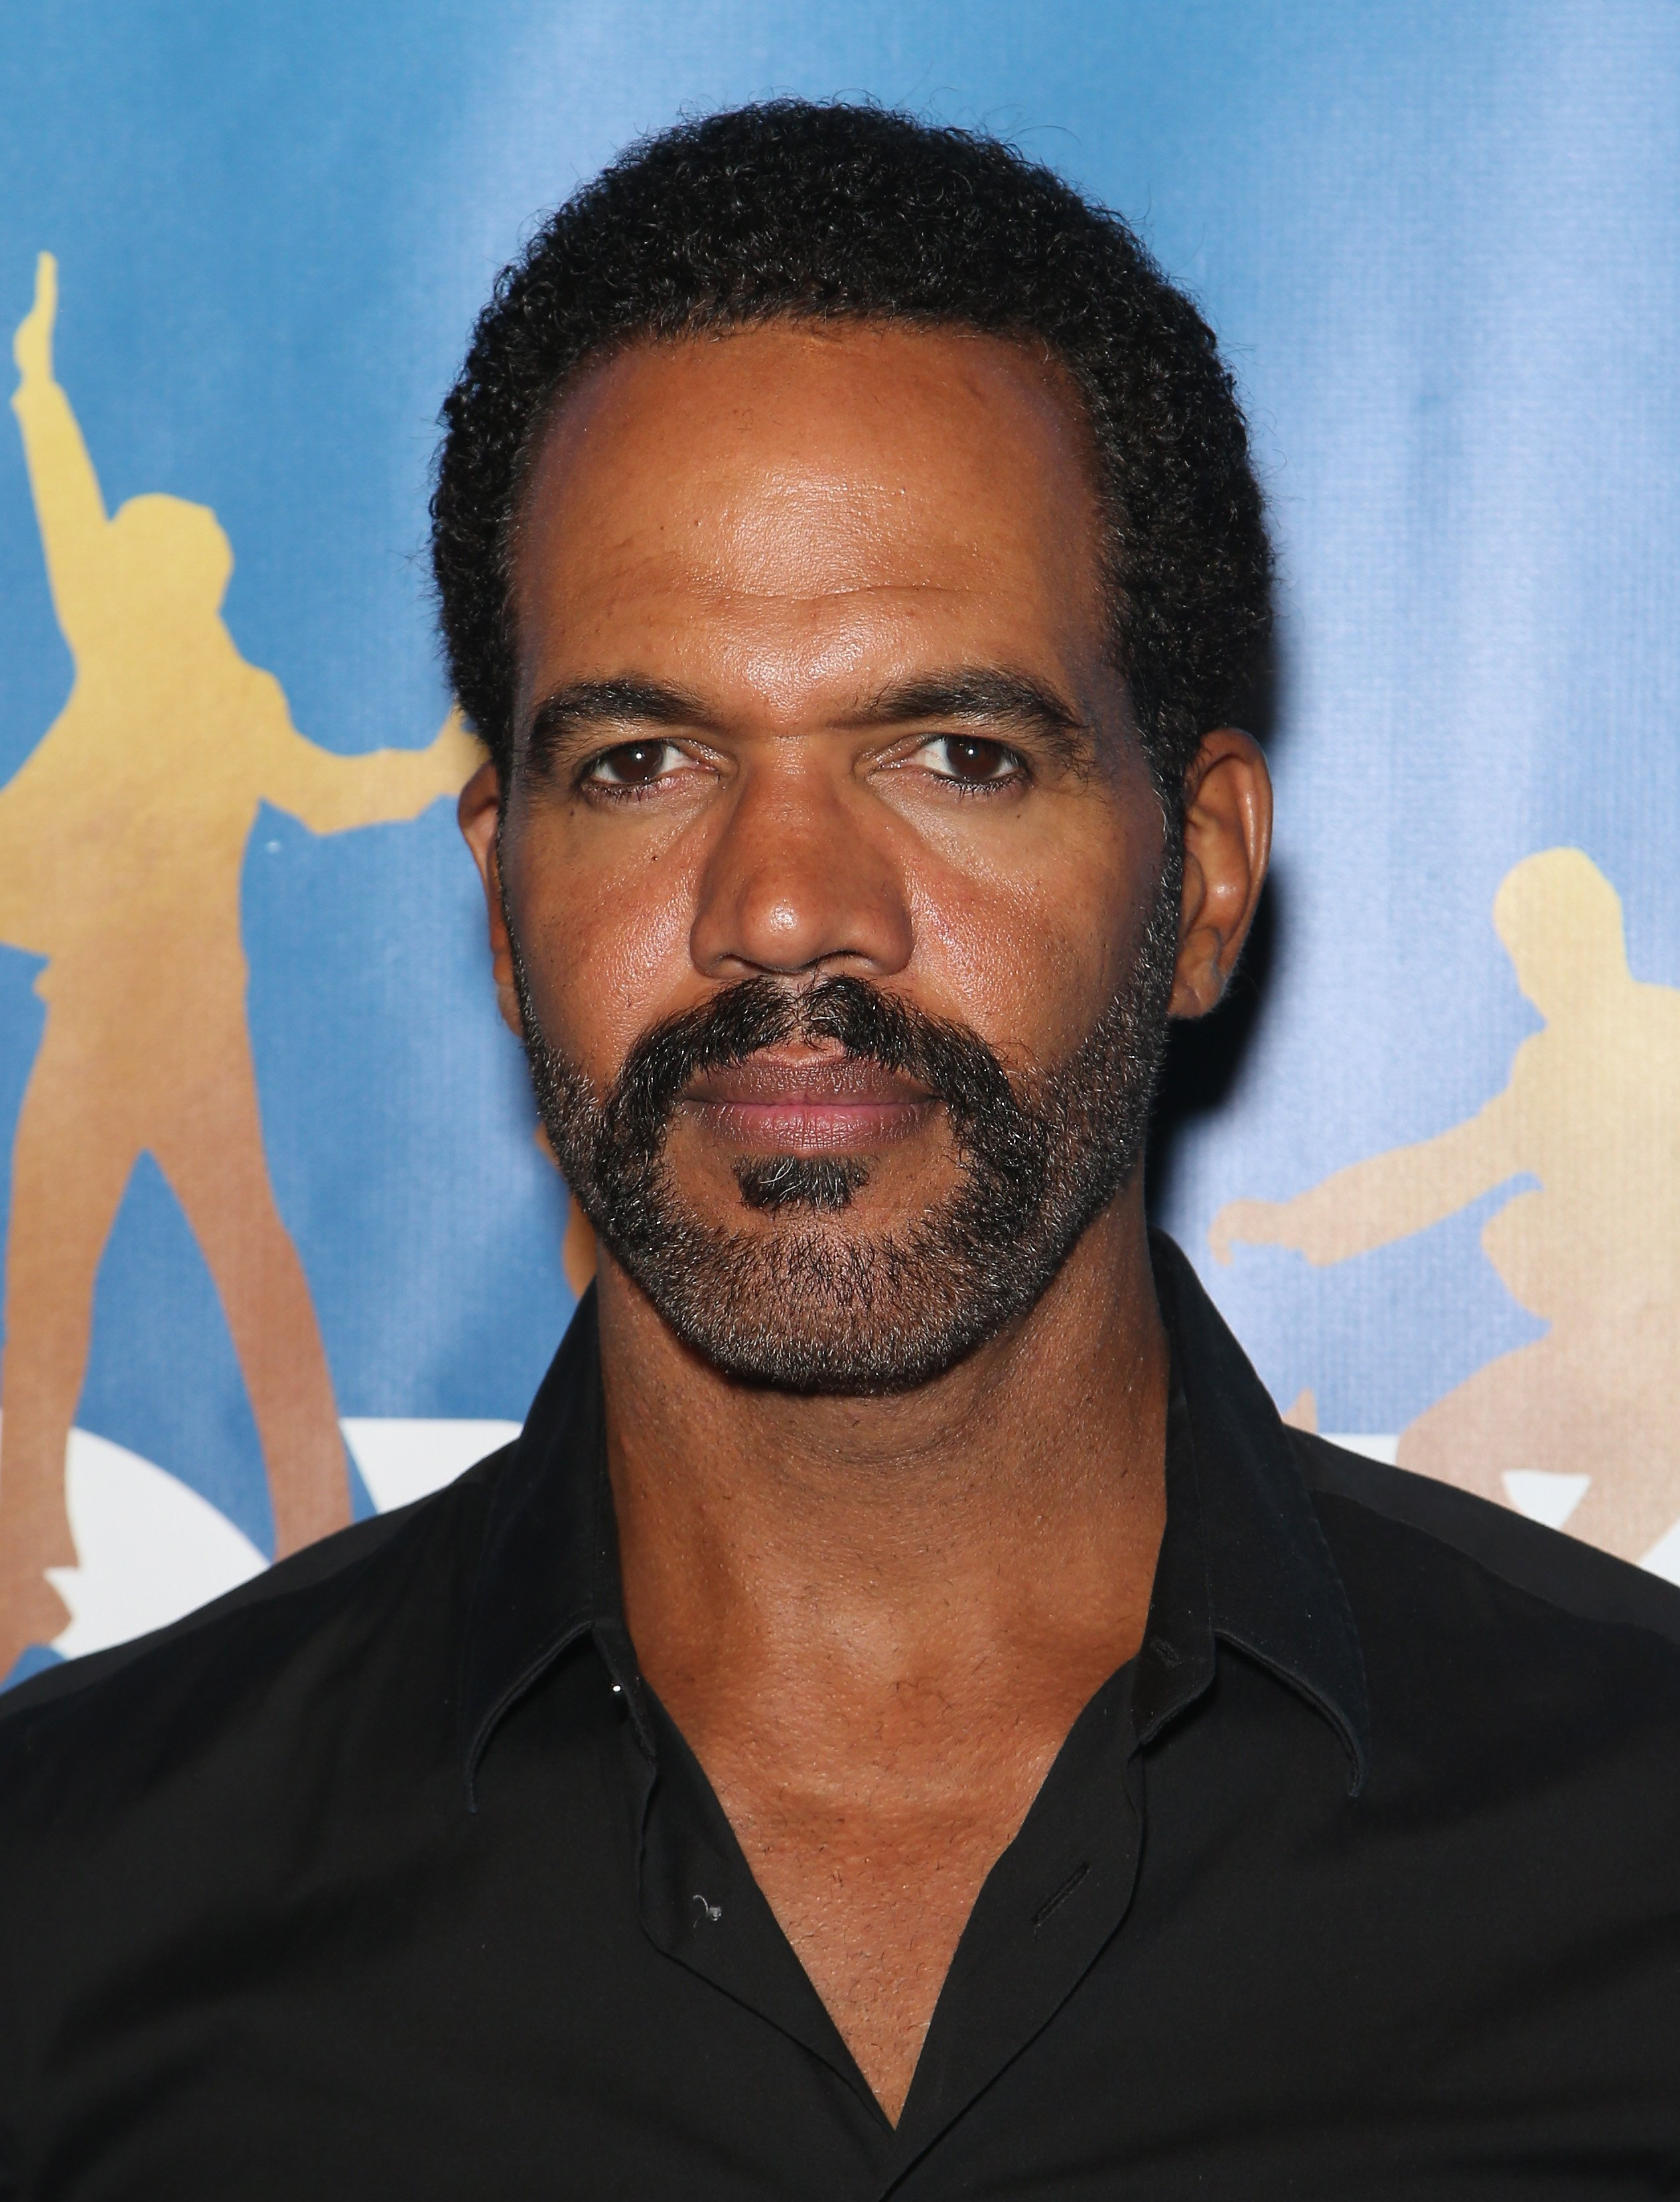 Kristoff St. John at The Mirage Hotel & Casino on July 14, 2016 in Las Vegas, Nevada | Photo: Getty Images